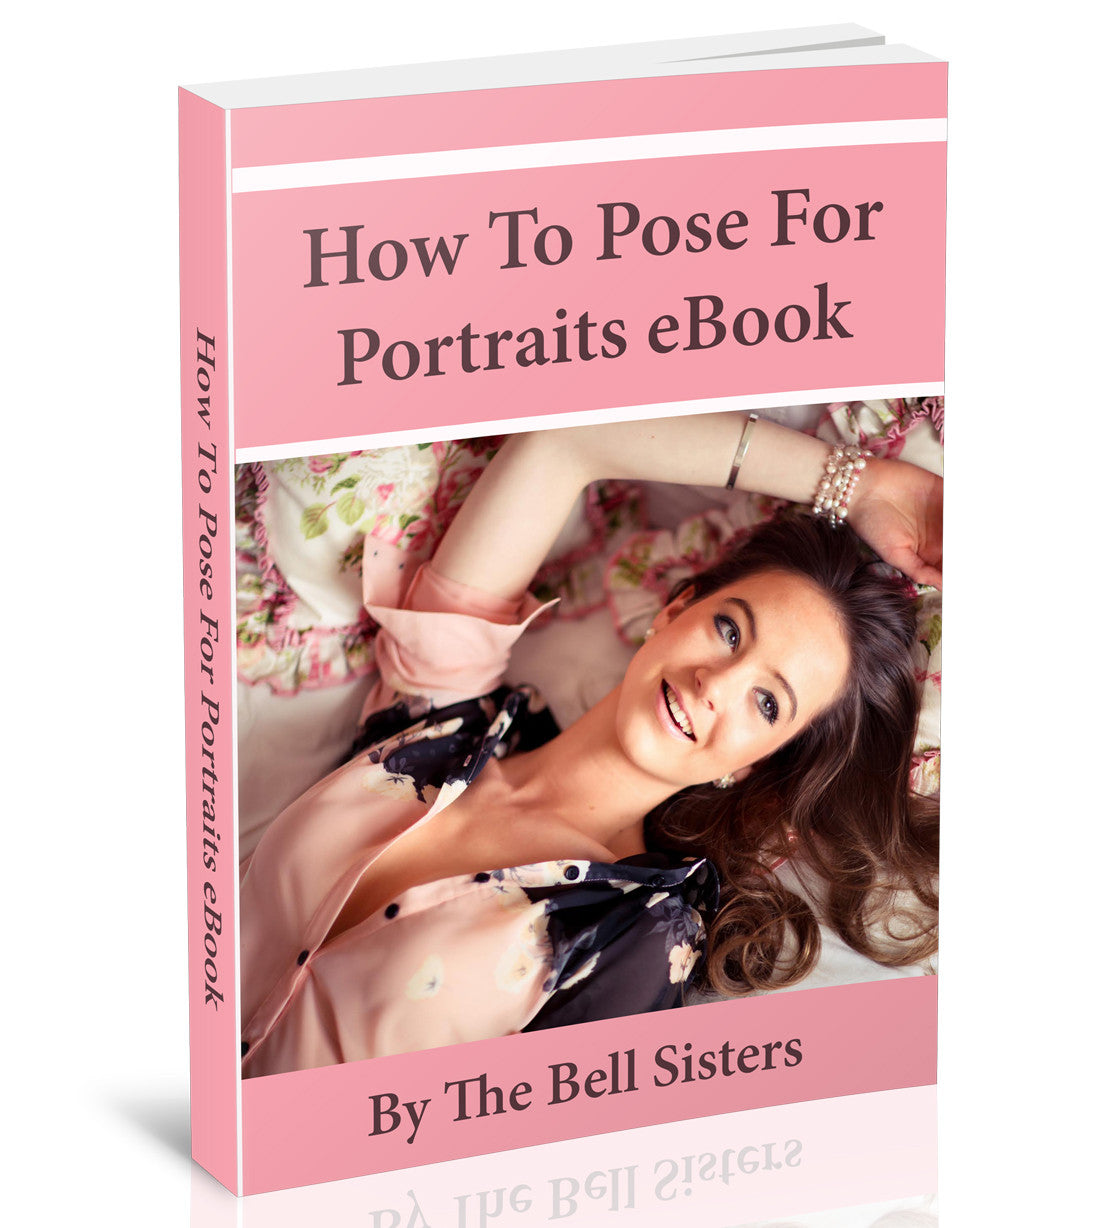 How To Pose For Portraits eBook